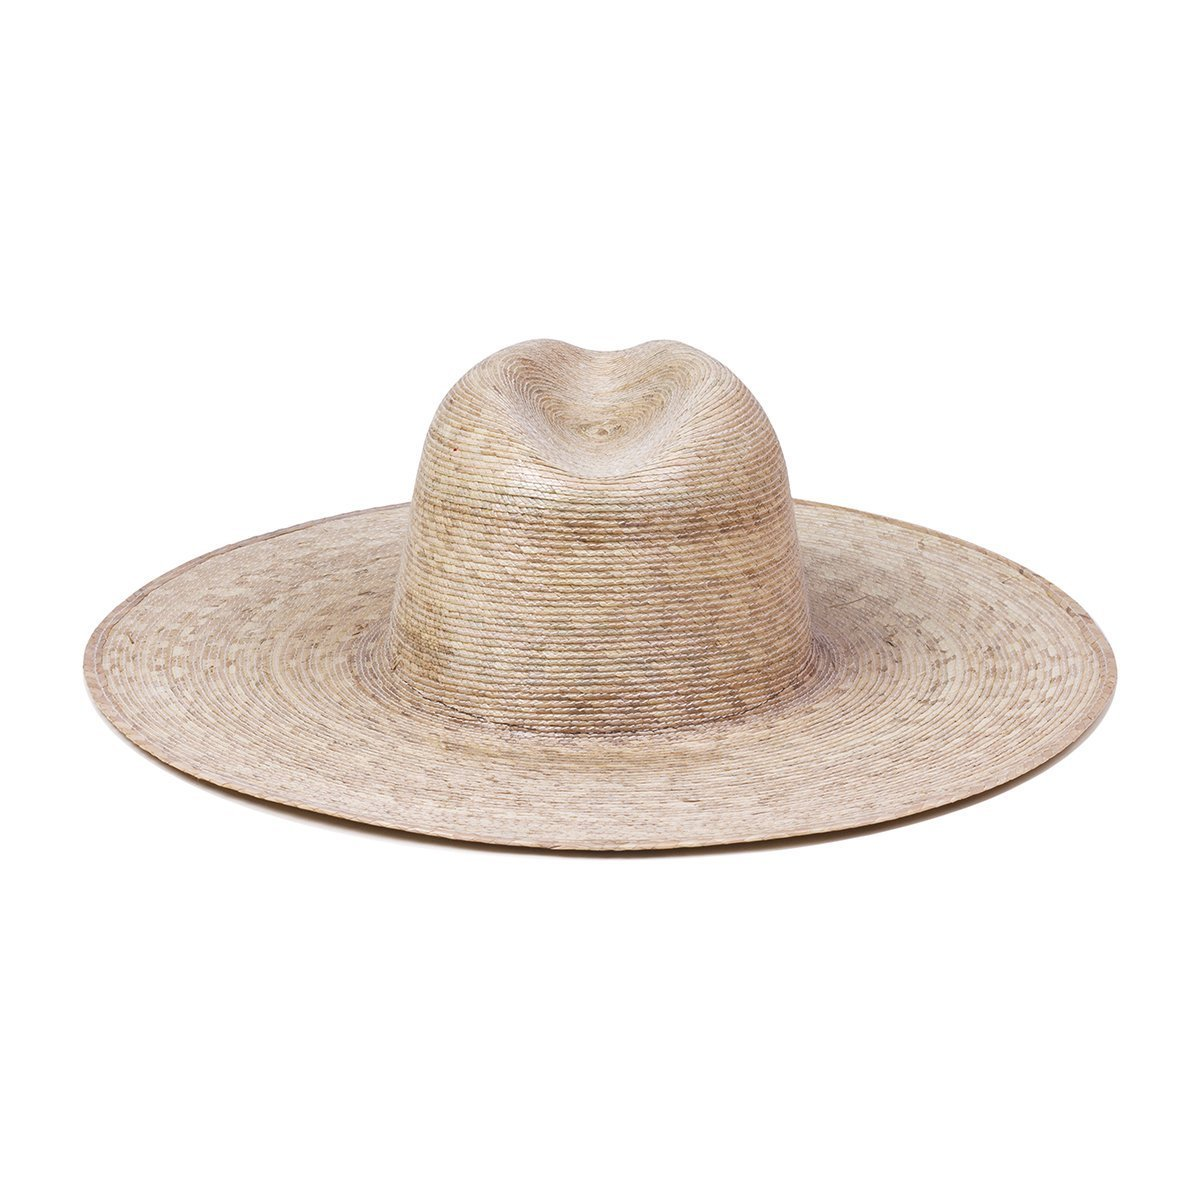 Load image into Gallery viewer, Wide Palma Fedora Hat from Lack of Color | Women's Straw Hat